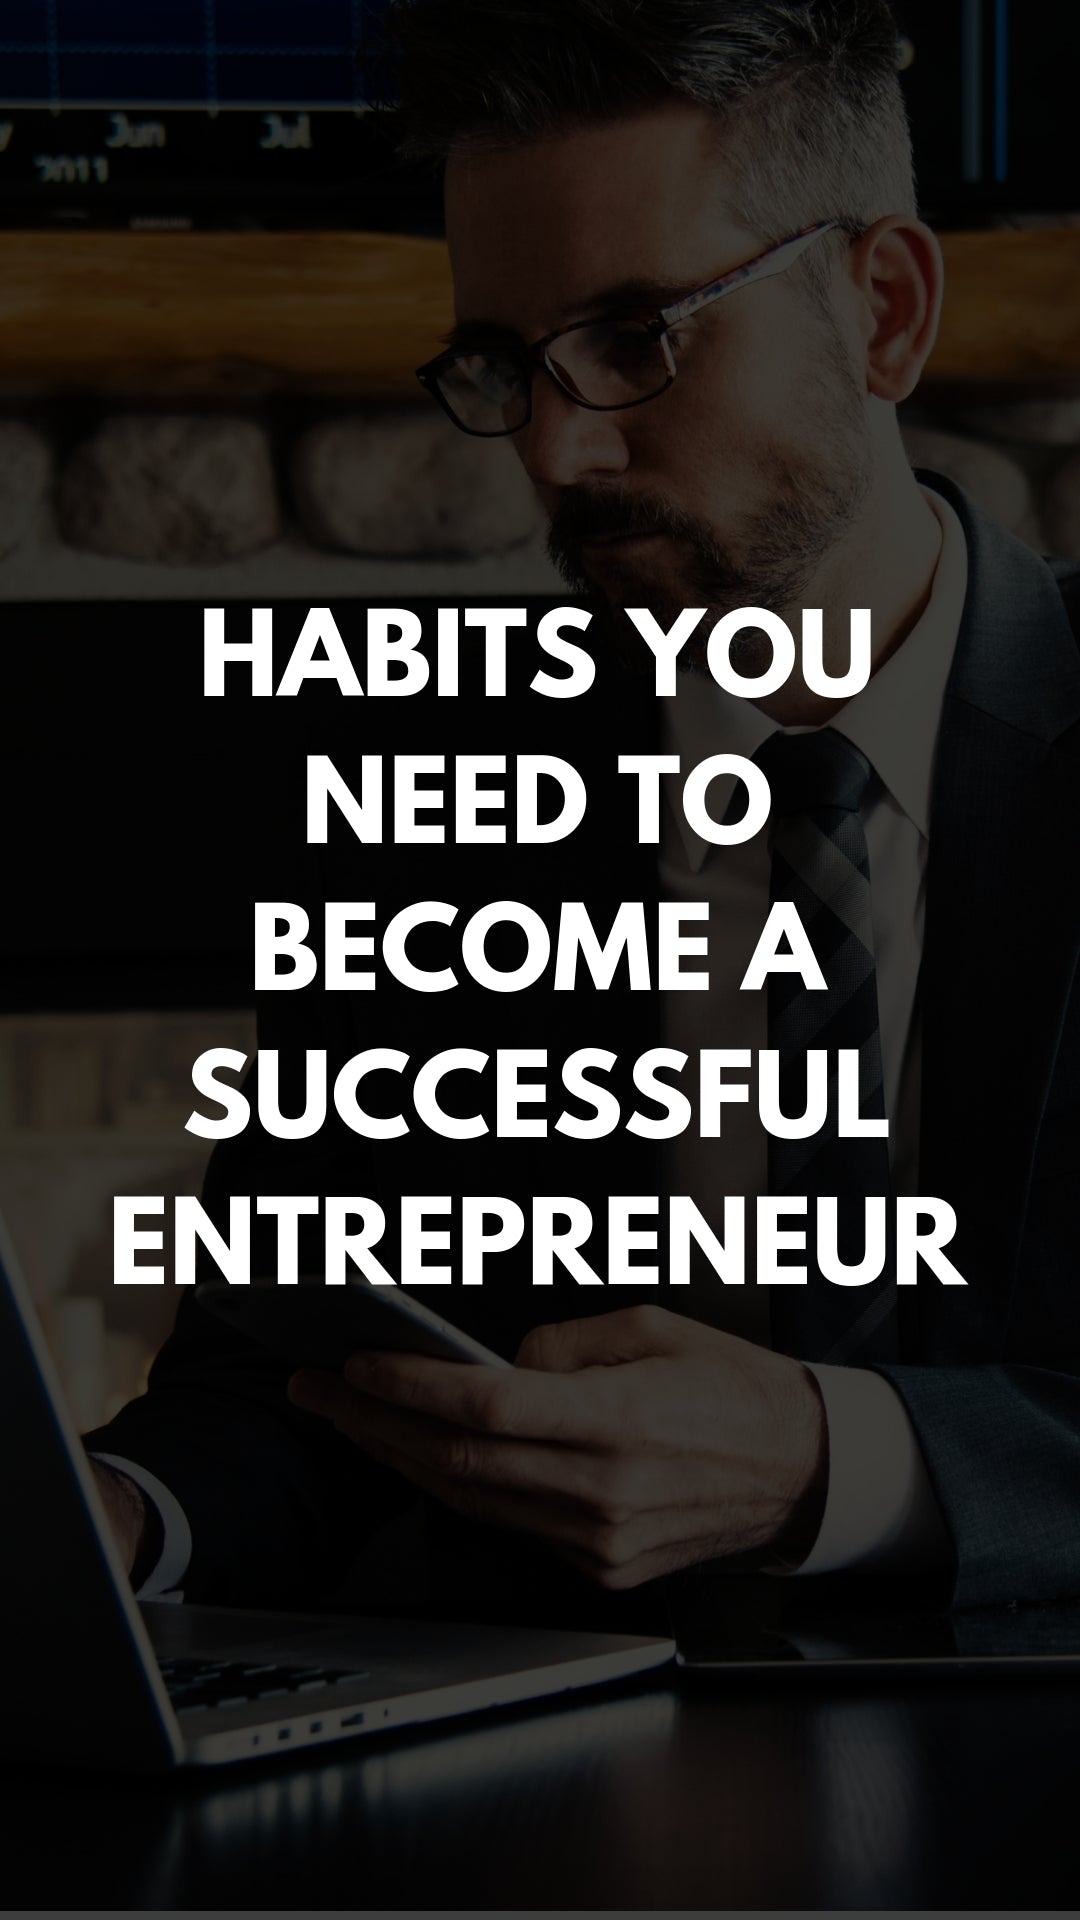 Habits You Need to Become a Successful Entrepreneur